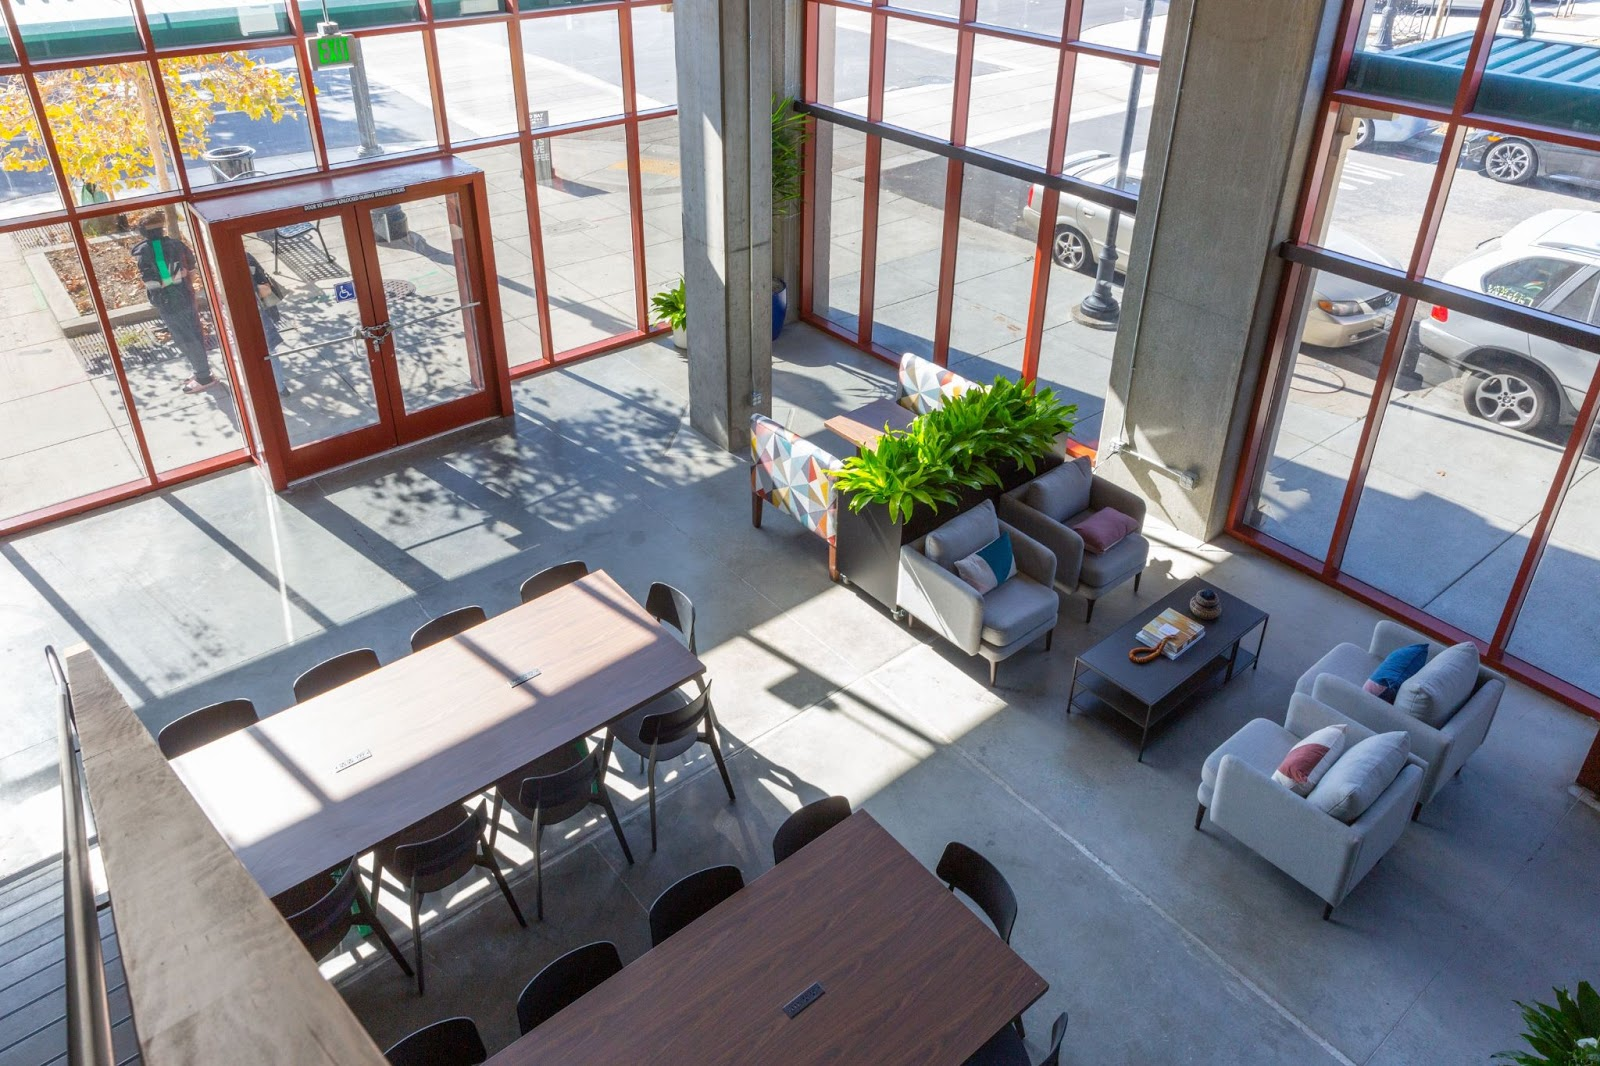 coworking space richmond east bay colorful design